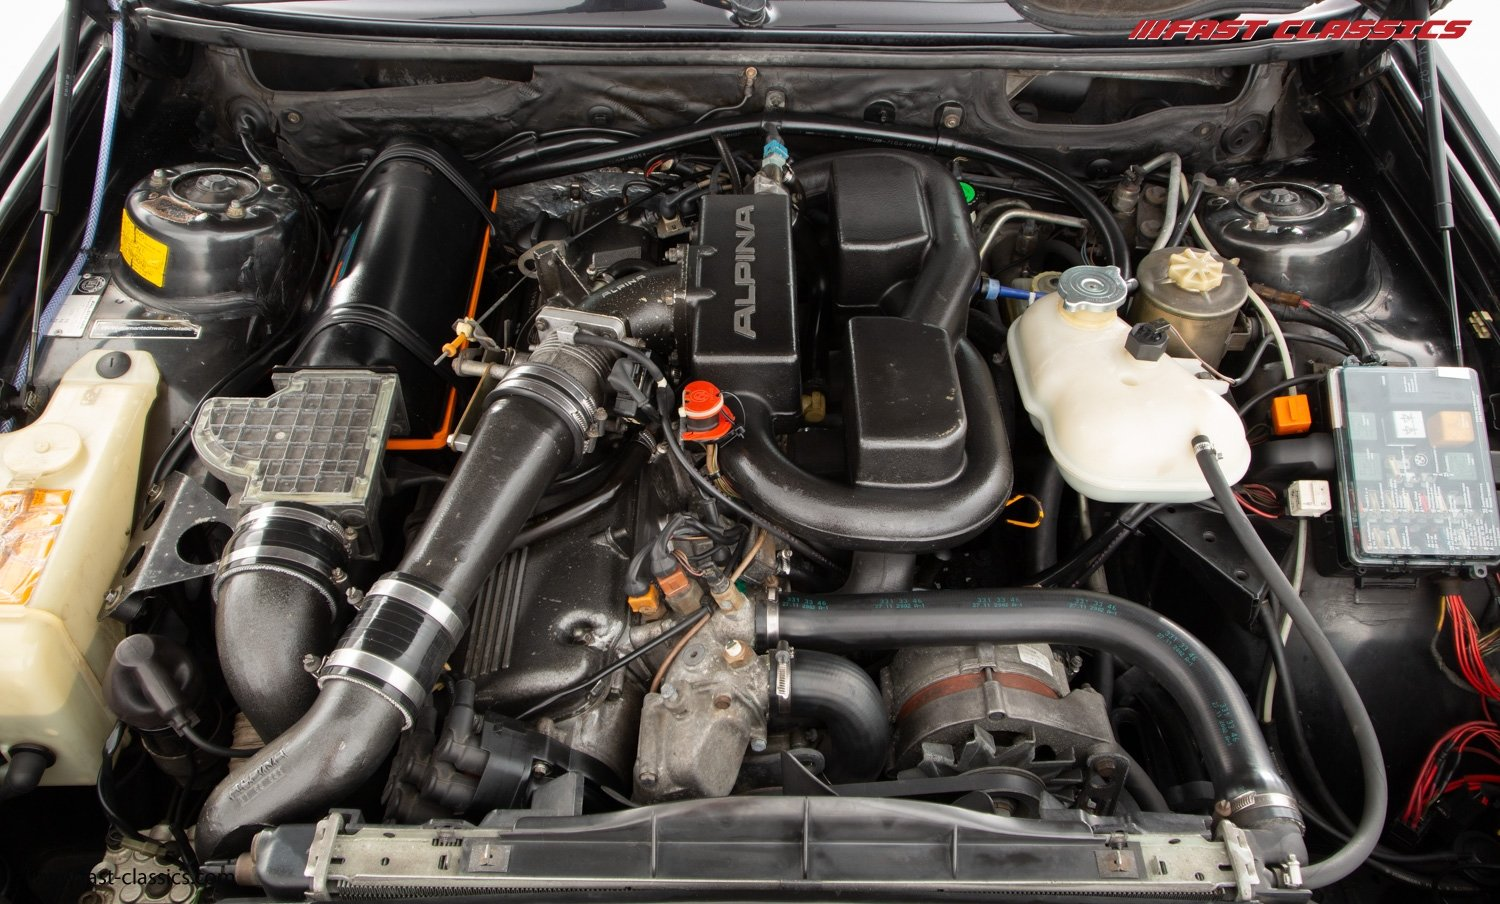 1986 ALPINA B7 TURBO/1 // 1 OF 42 HIGH POWER CATALYST CARS  For Sale (picture 20 of 24)